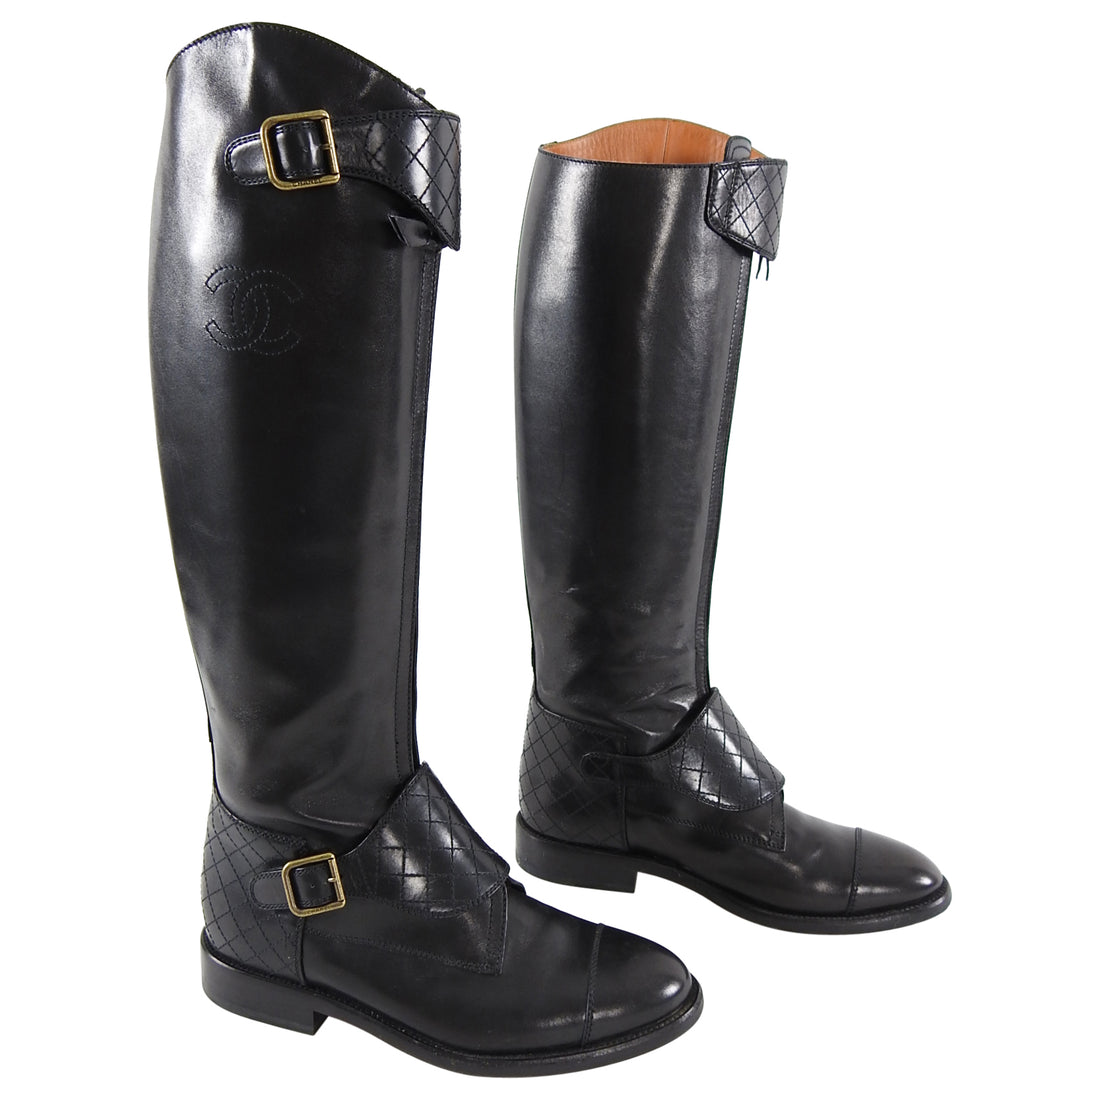 Chanel Tall Black Leather CC Quilt Riding Boots - 40.5